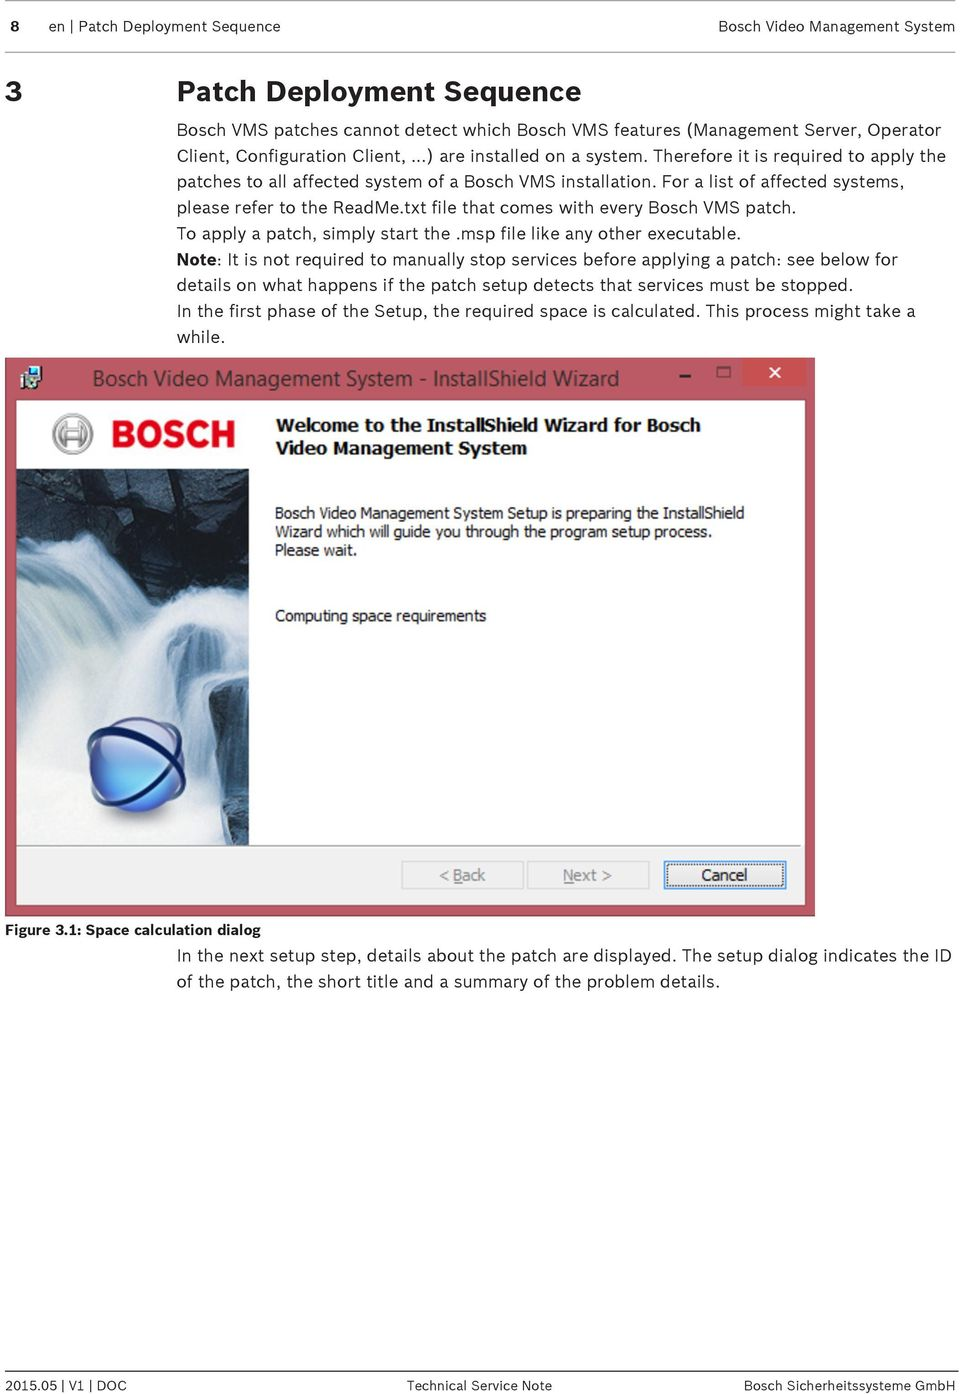 txt file that comes with every Bosch VMS patch. To apply a patch, simply start the.msp file like any other executable.